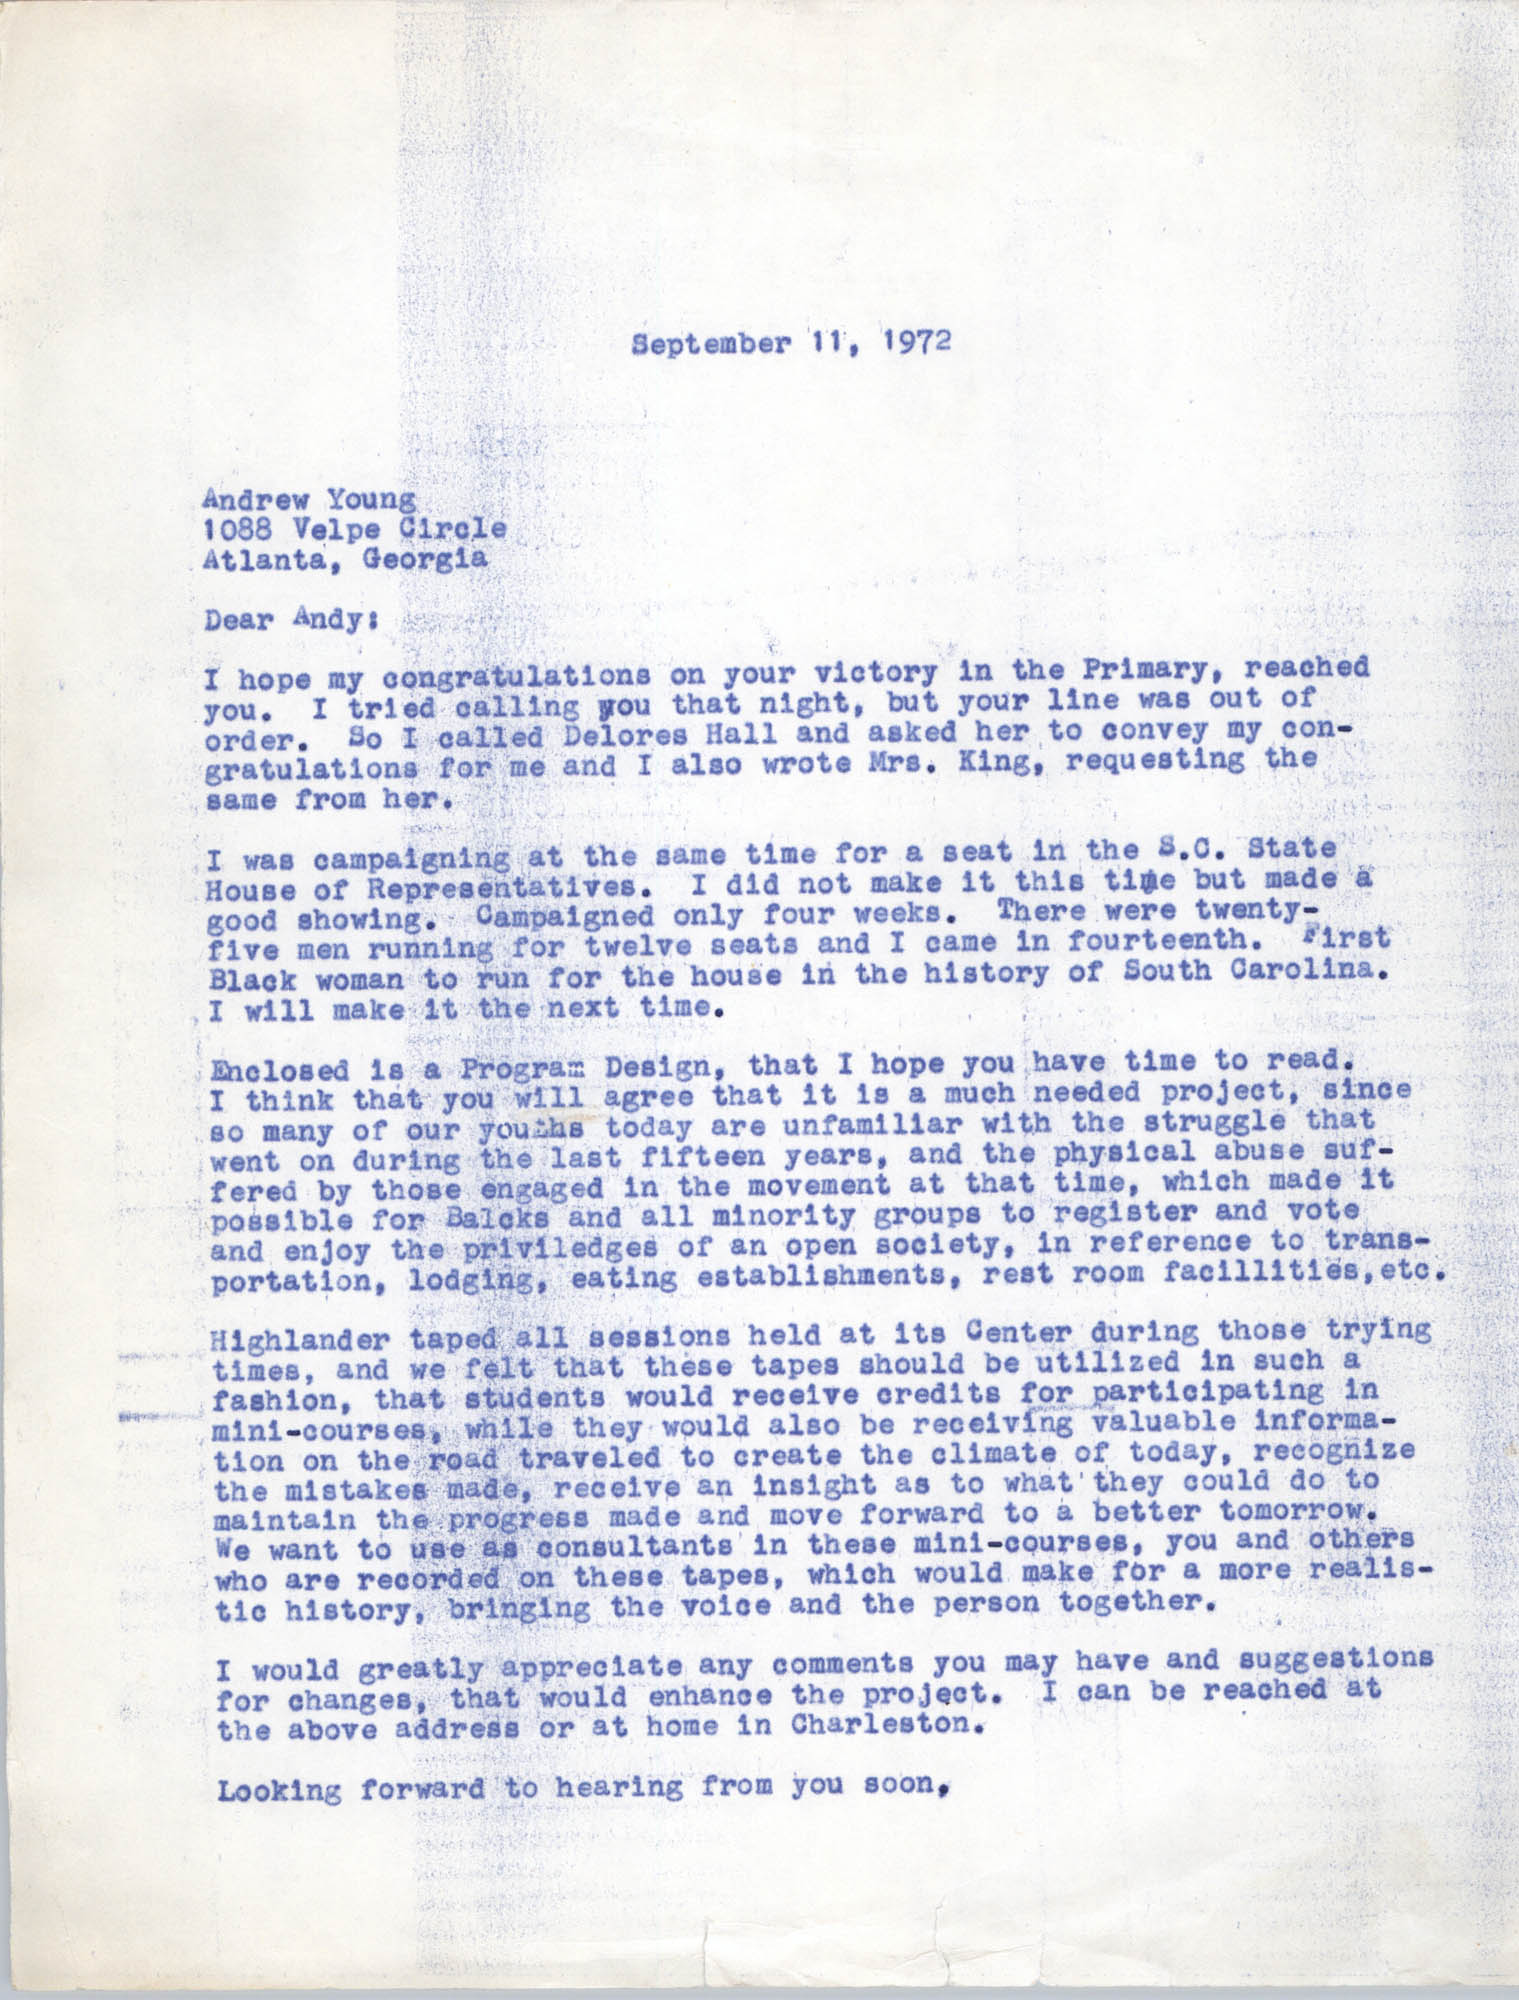 Letter from Bernice Robinson to Andrew Young, September 11, 1972